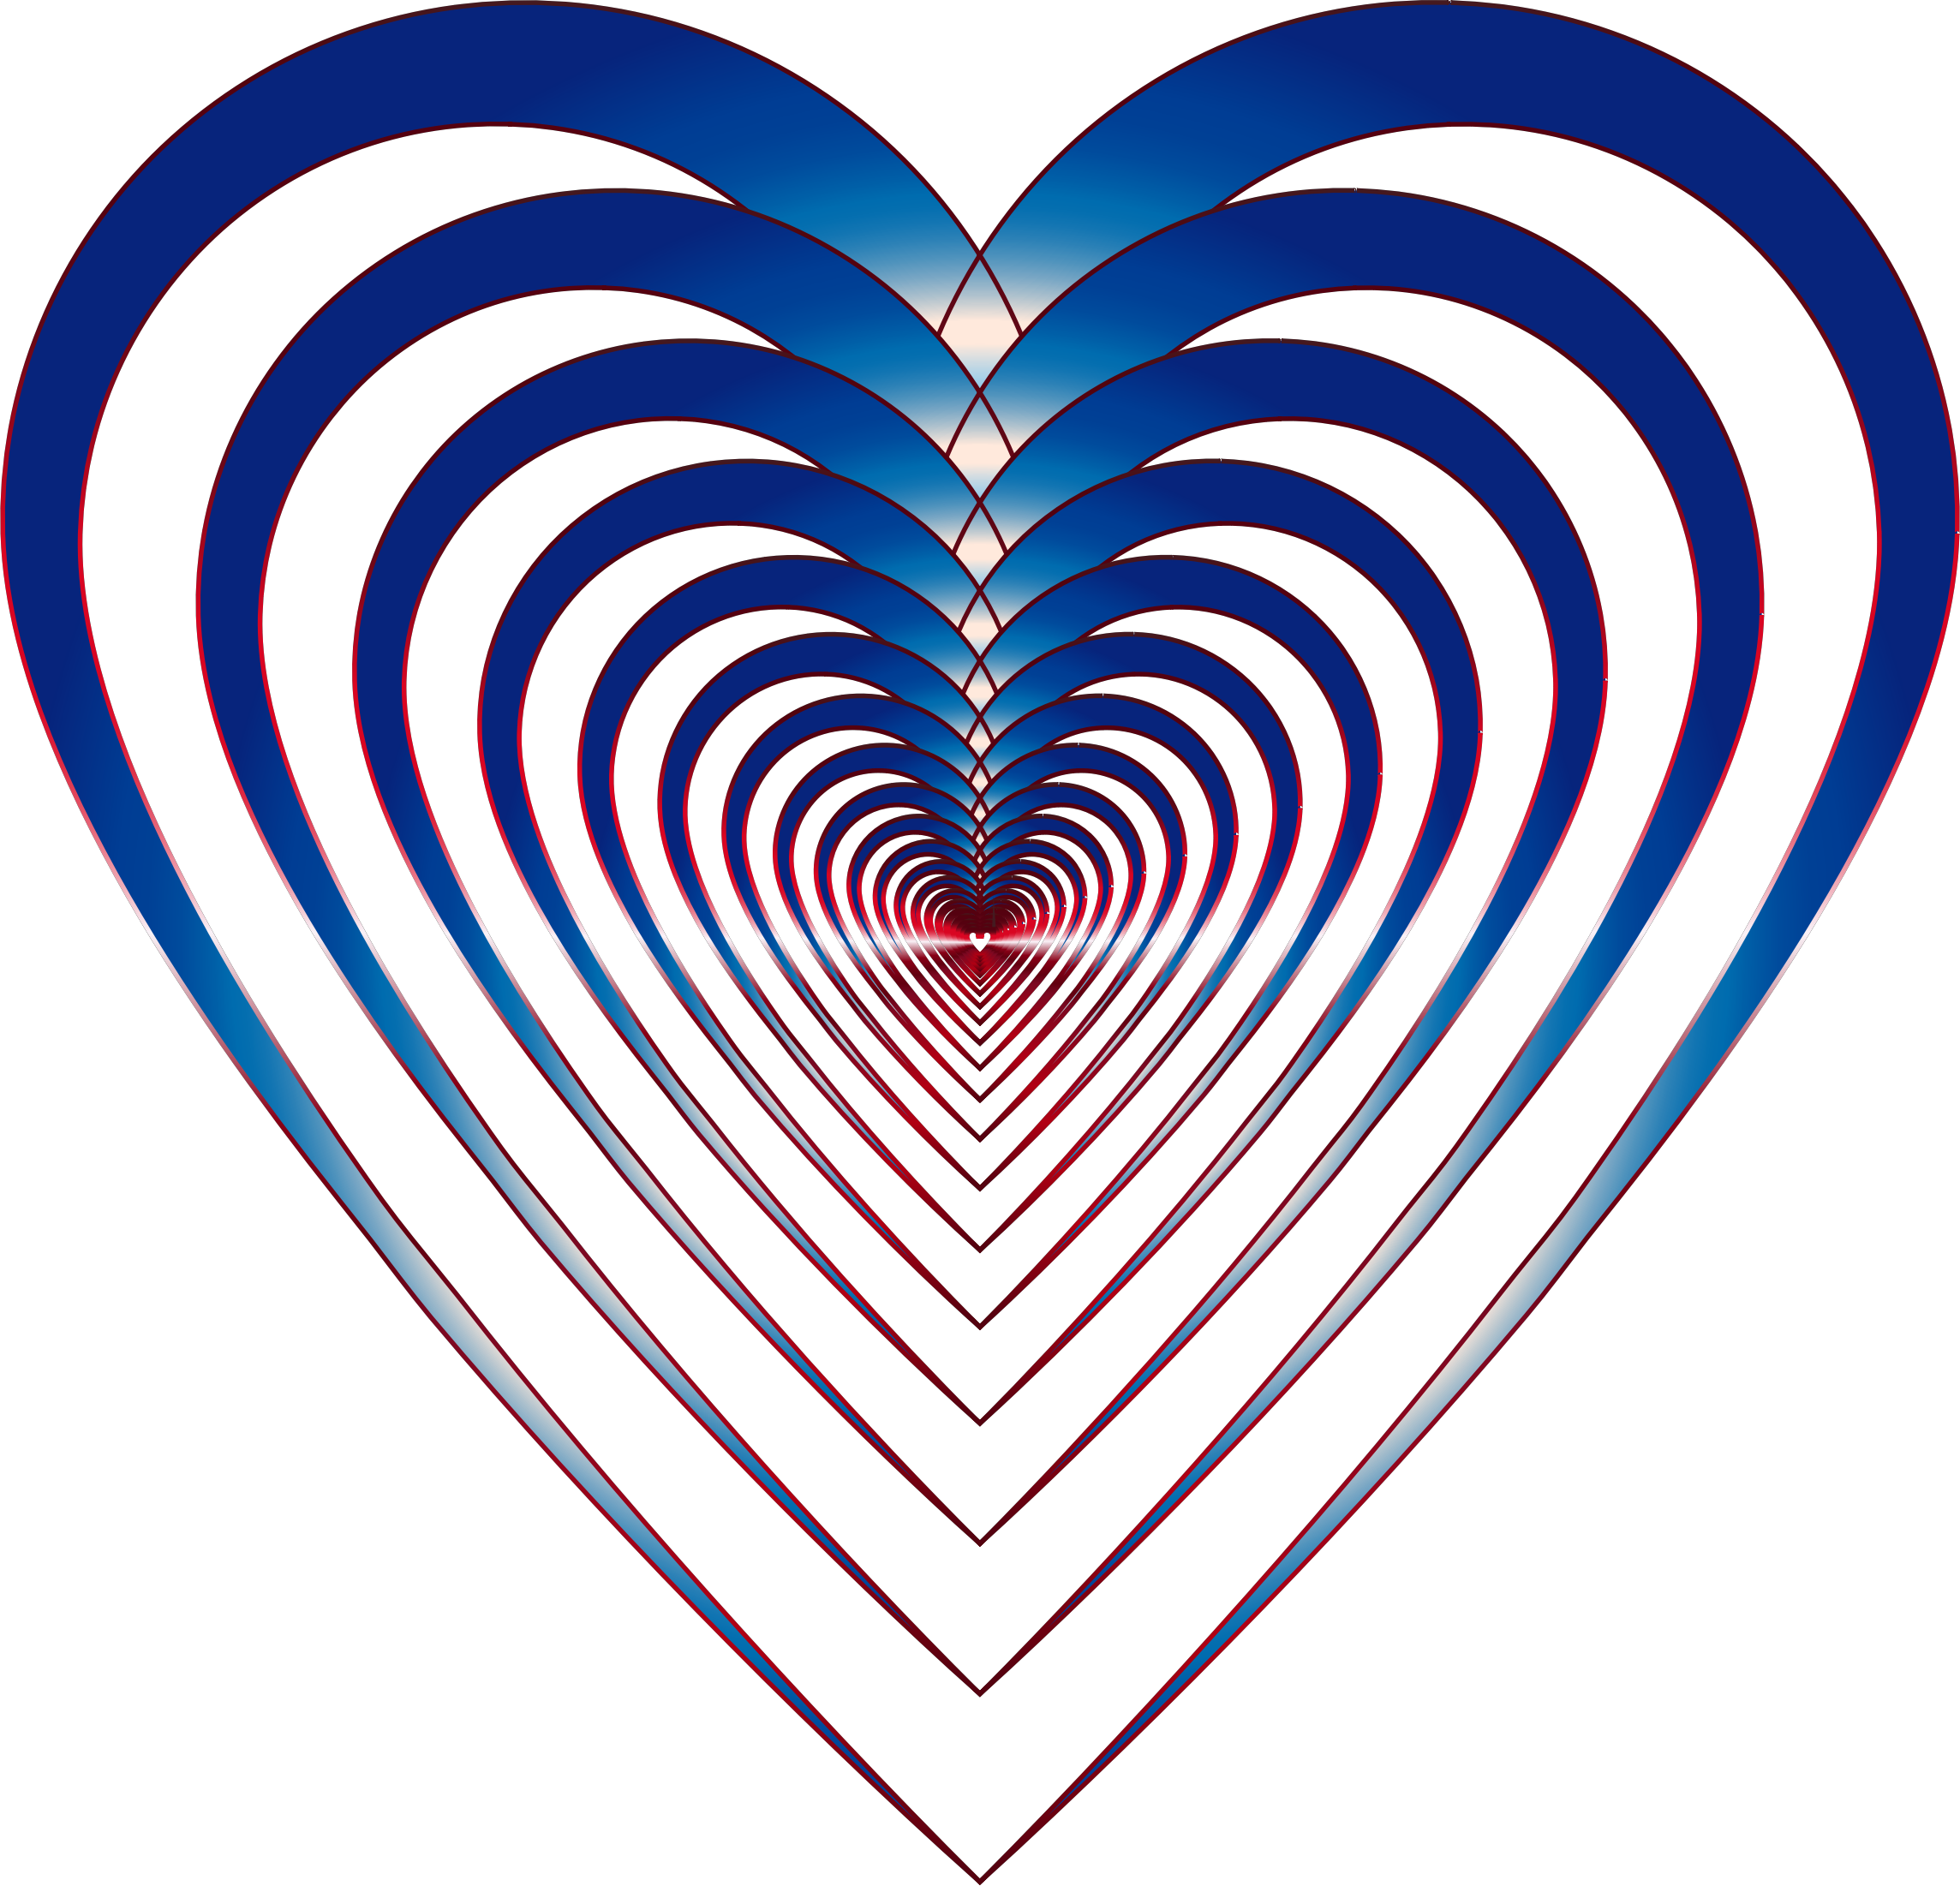 clipart - chromatic Love 7 No Background